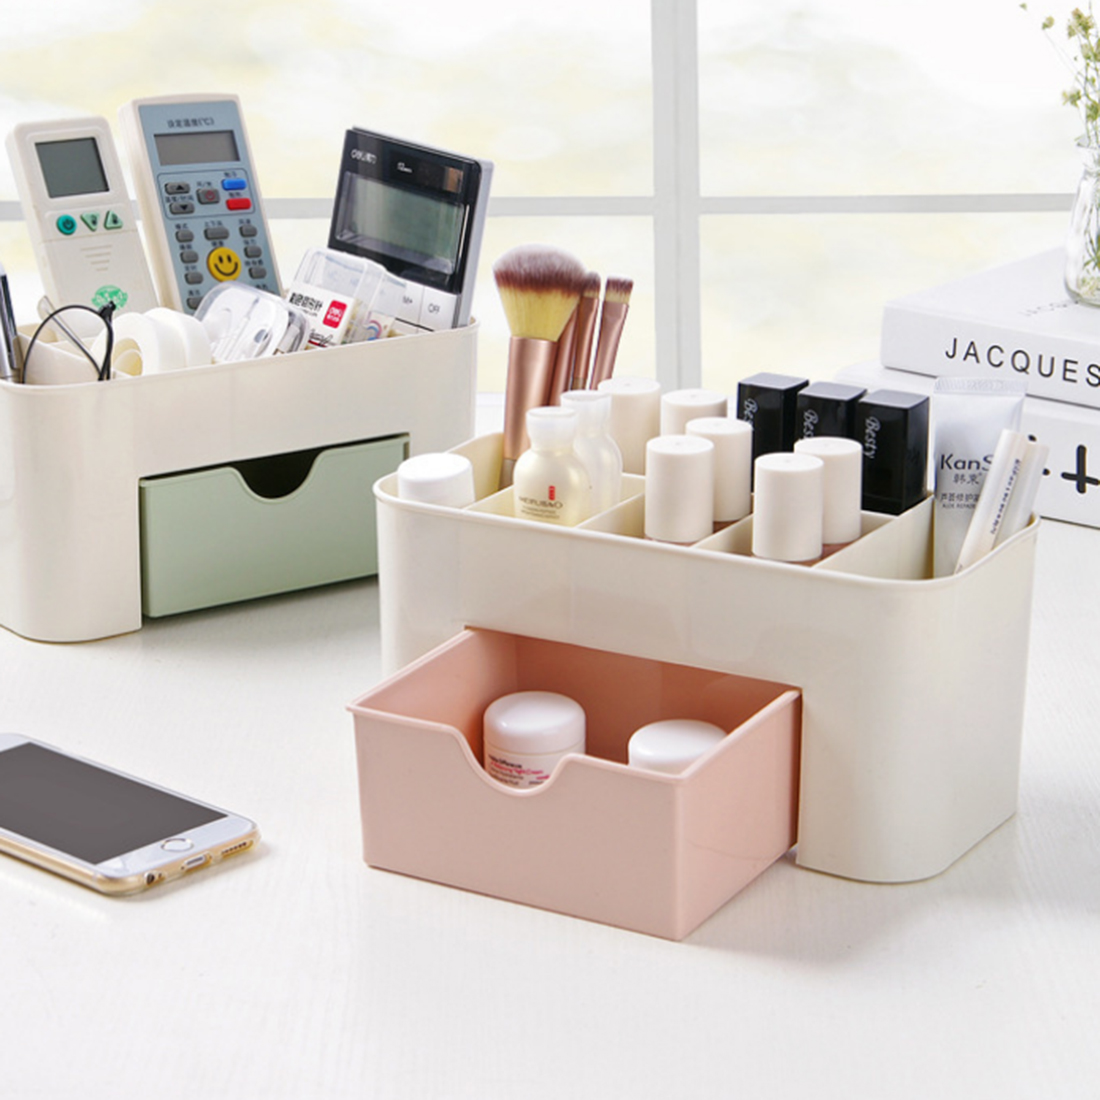 HIPSTEEN Plain Color Plastic Desktop Cosmetic Container Household Storage Box Multi-function Jewel Case with Drawer